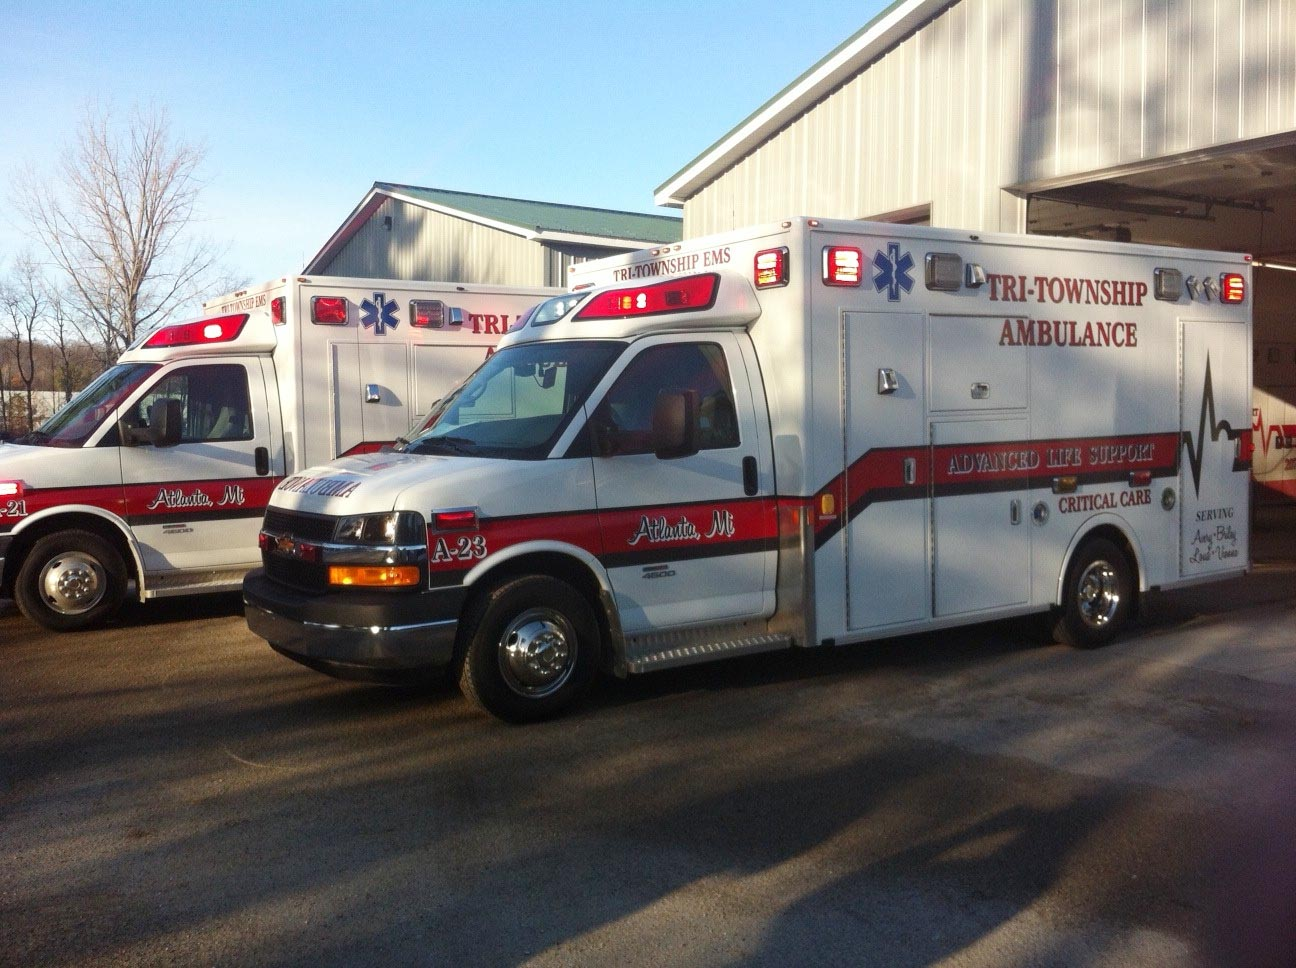 Ambulances01